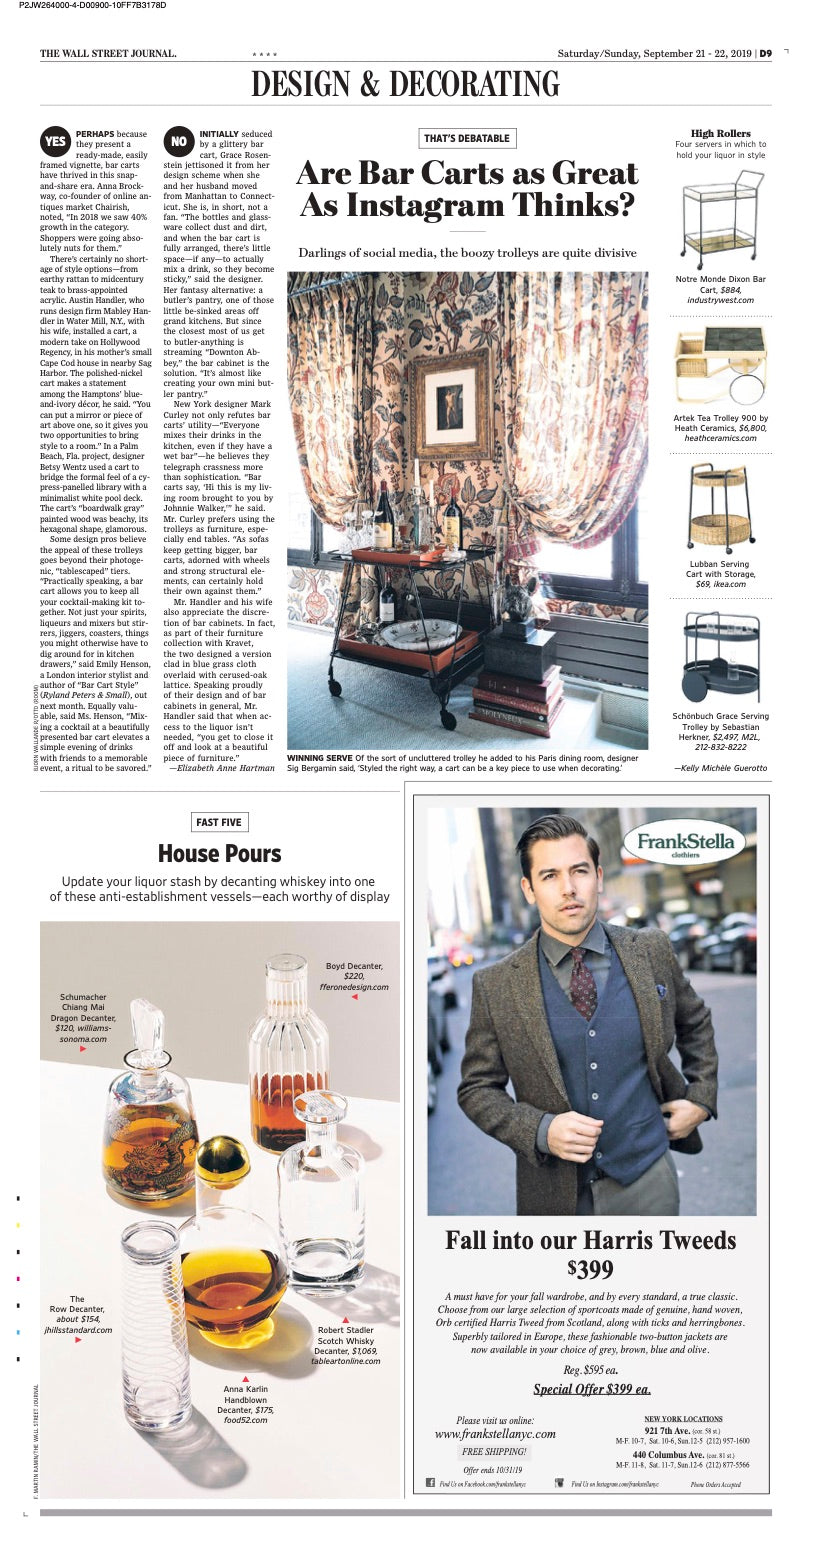 wall street Journal boyd decanter